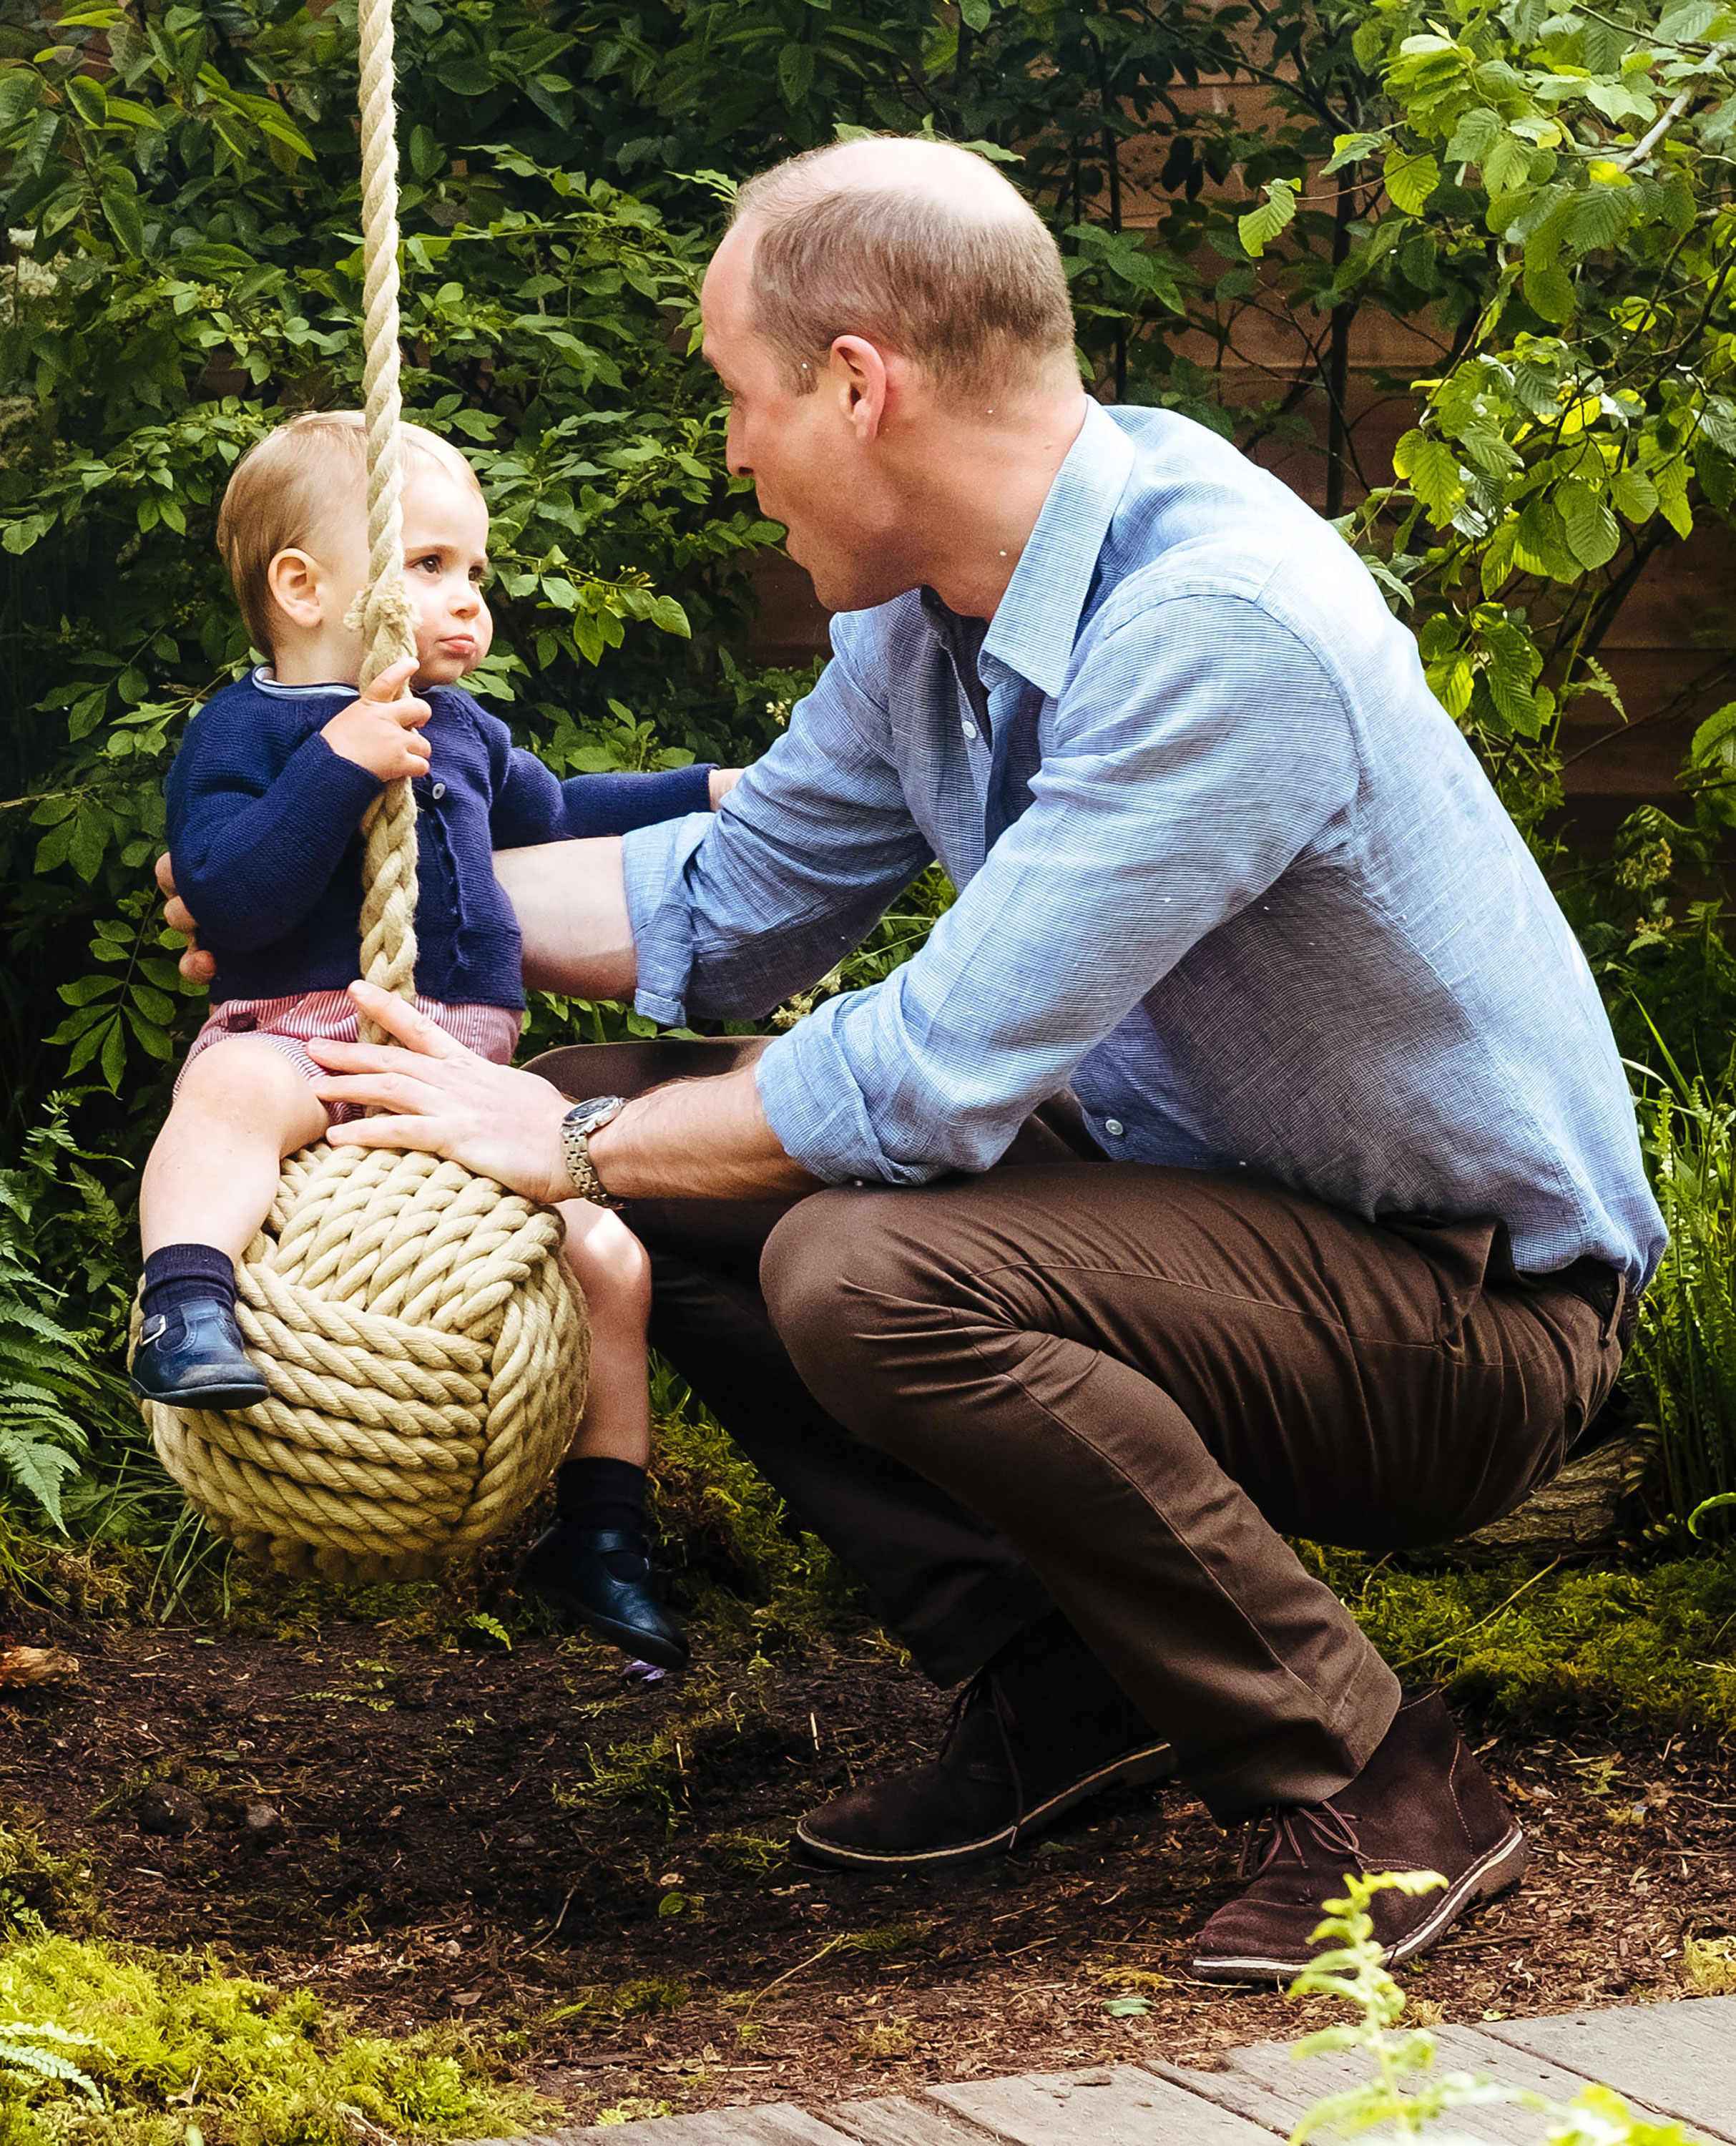 Prince William, Duchess Kate and Kids Play in the Garden She Designed at Chelsea Flower Show - William pulled a funny face as Louis focused on his father.